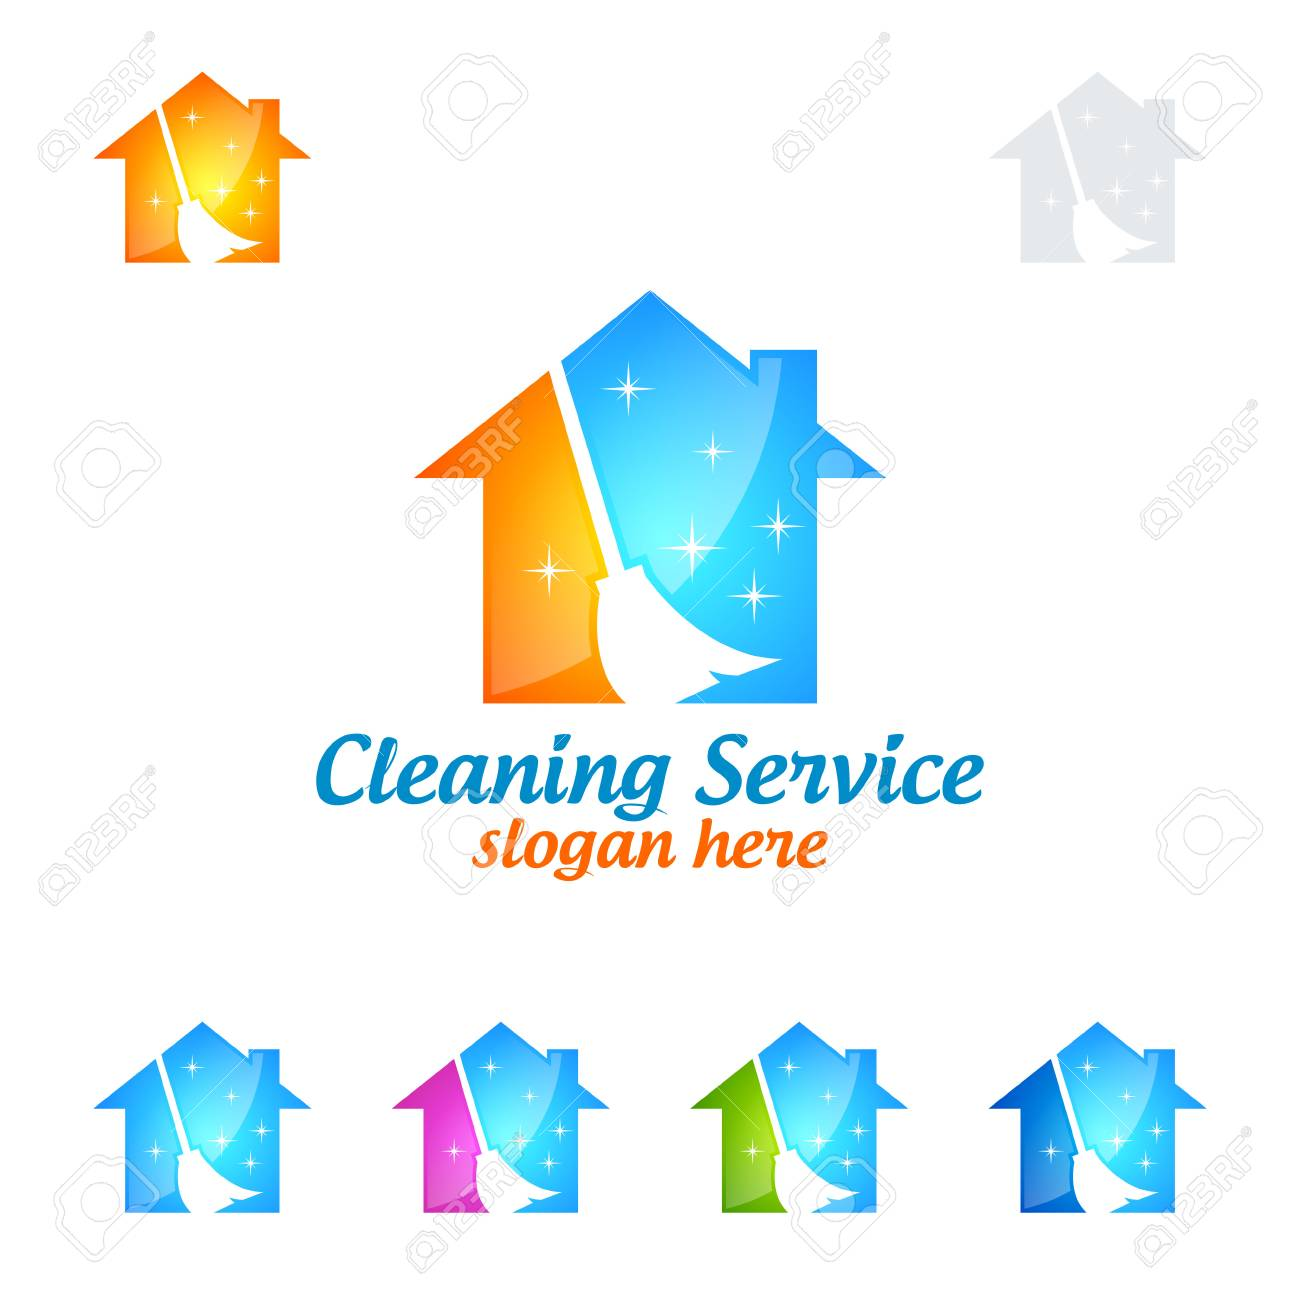 Home Cleaning Service Vector Logo Design, Eco Friendly With Shiny ...